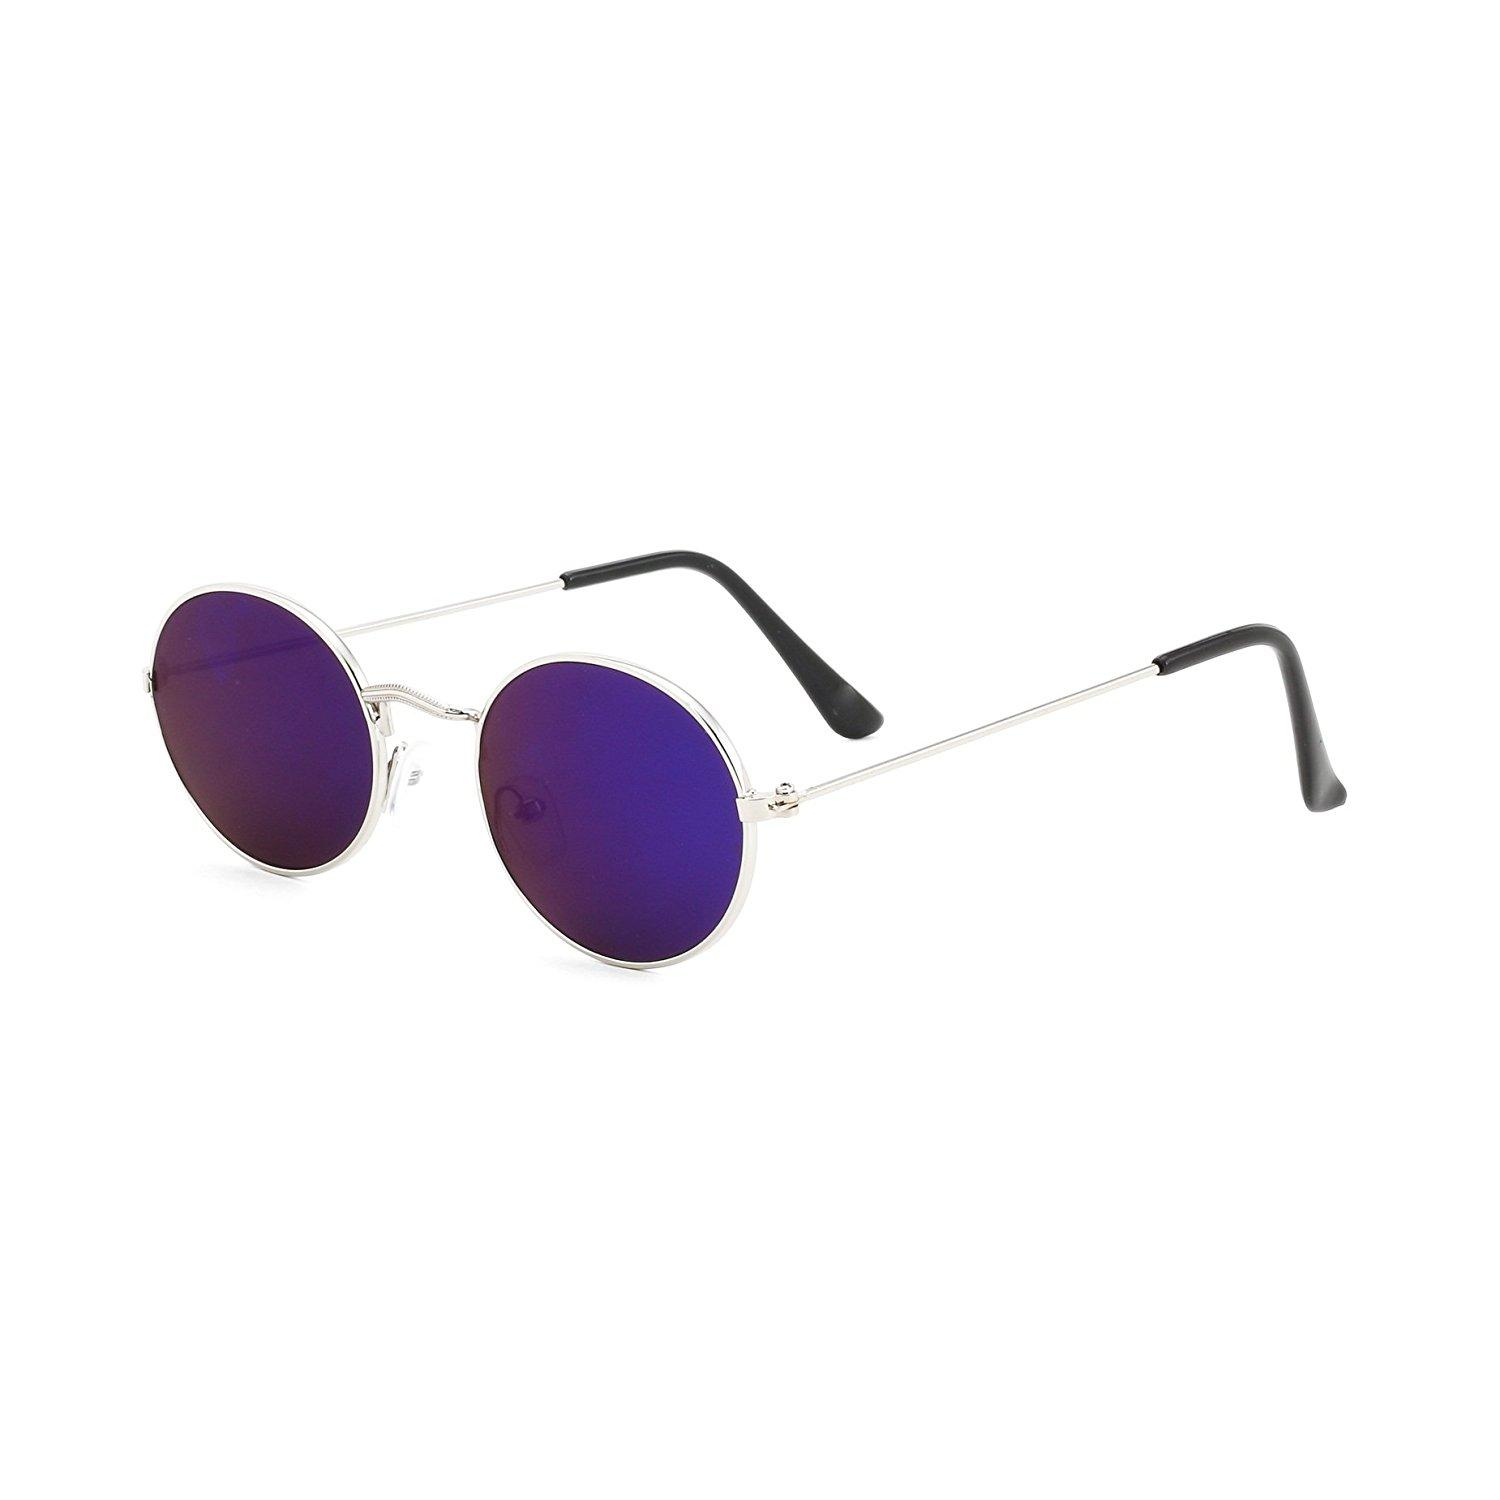 54d891cd8b Protected Round Unisex Sunglasses - SeenIt